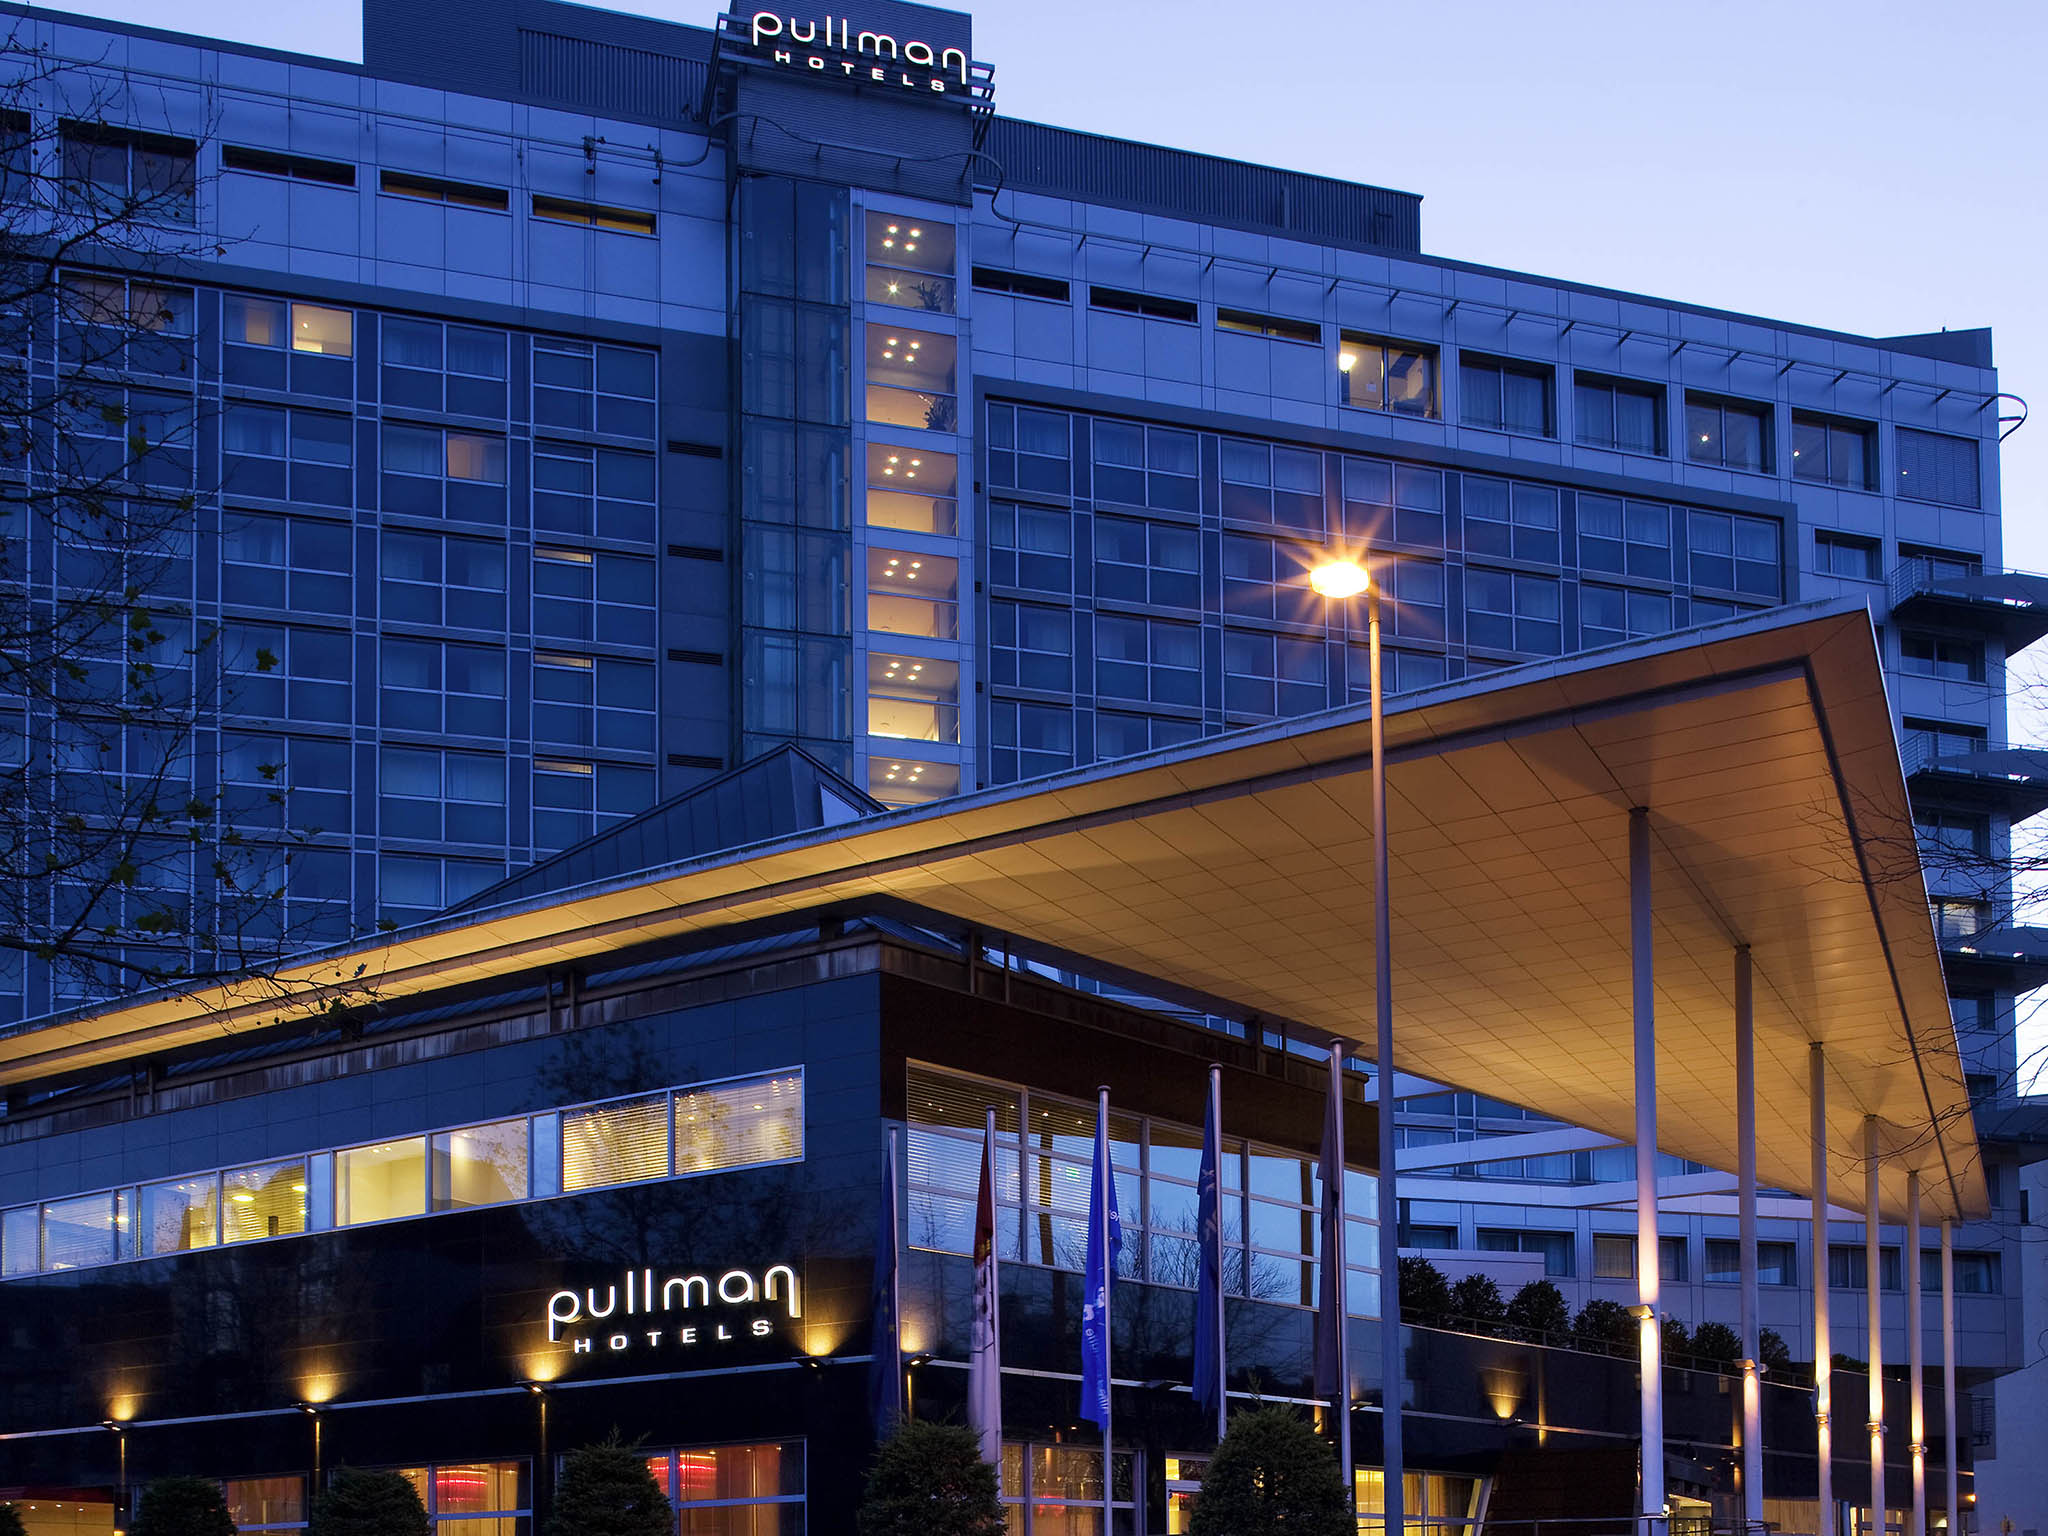 Adagio Koln City Aparthotel Hotel Pullman Cologne Book Your Hotel In Cologne Now